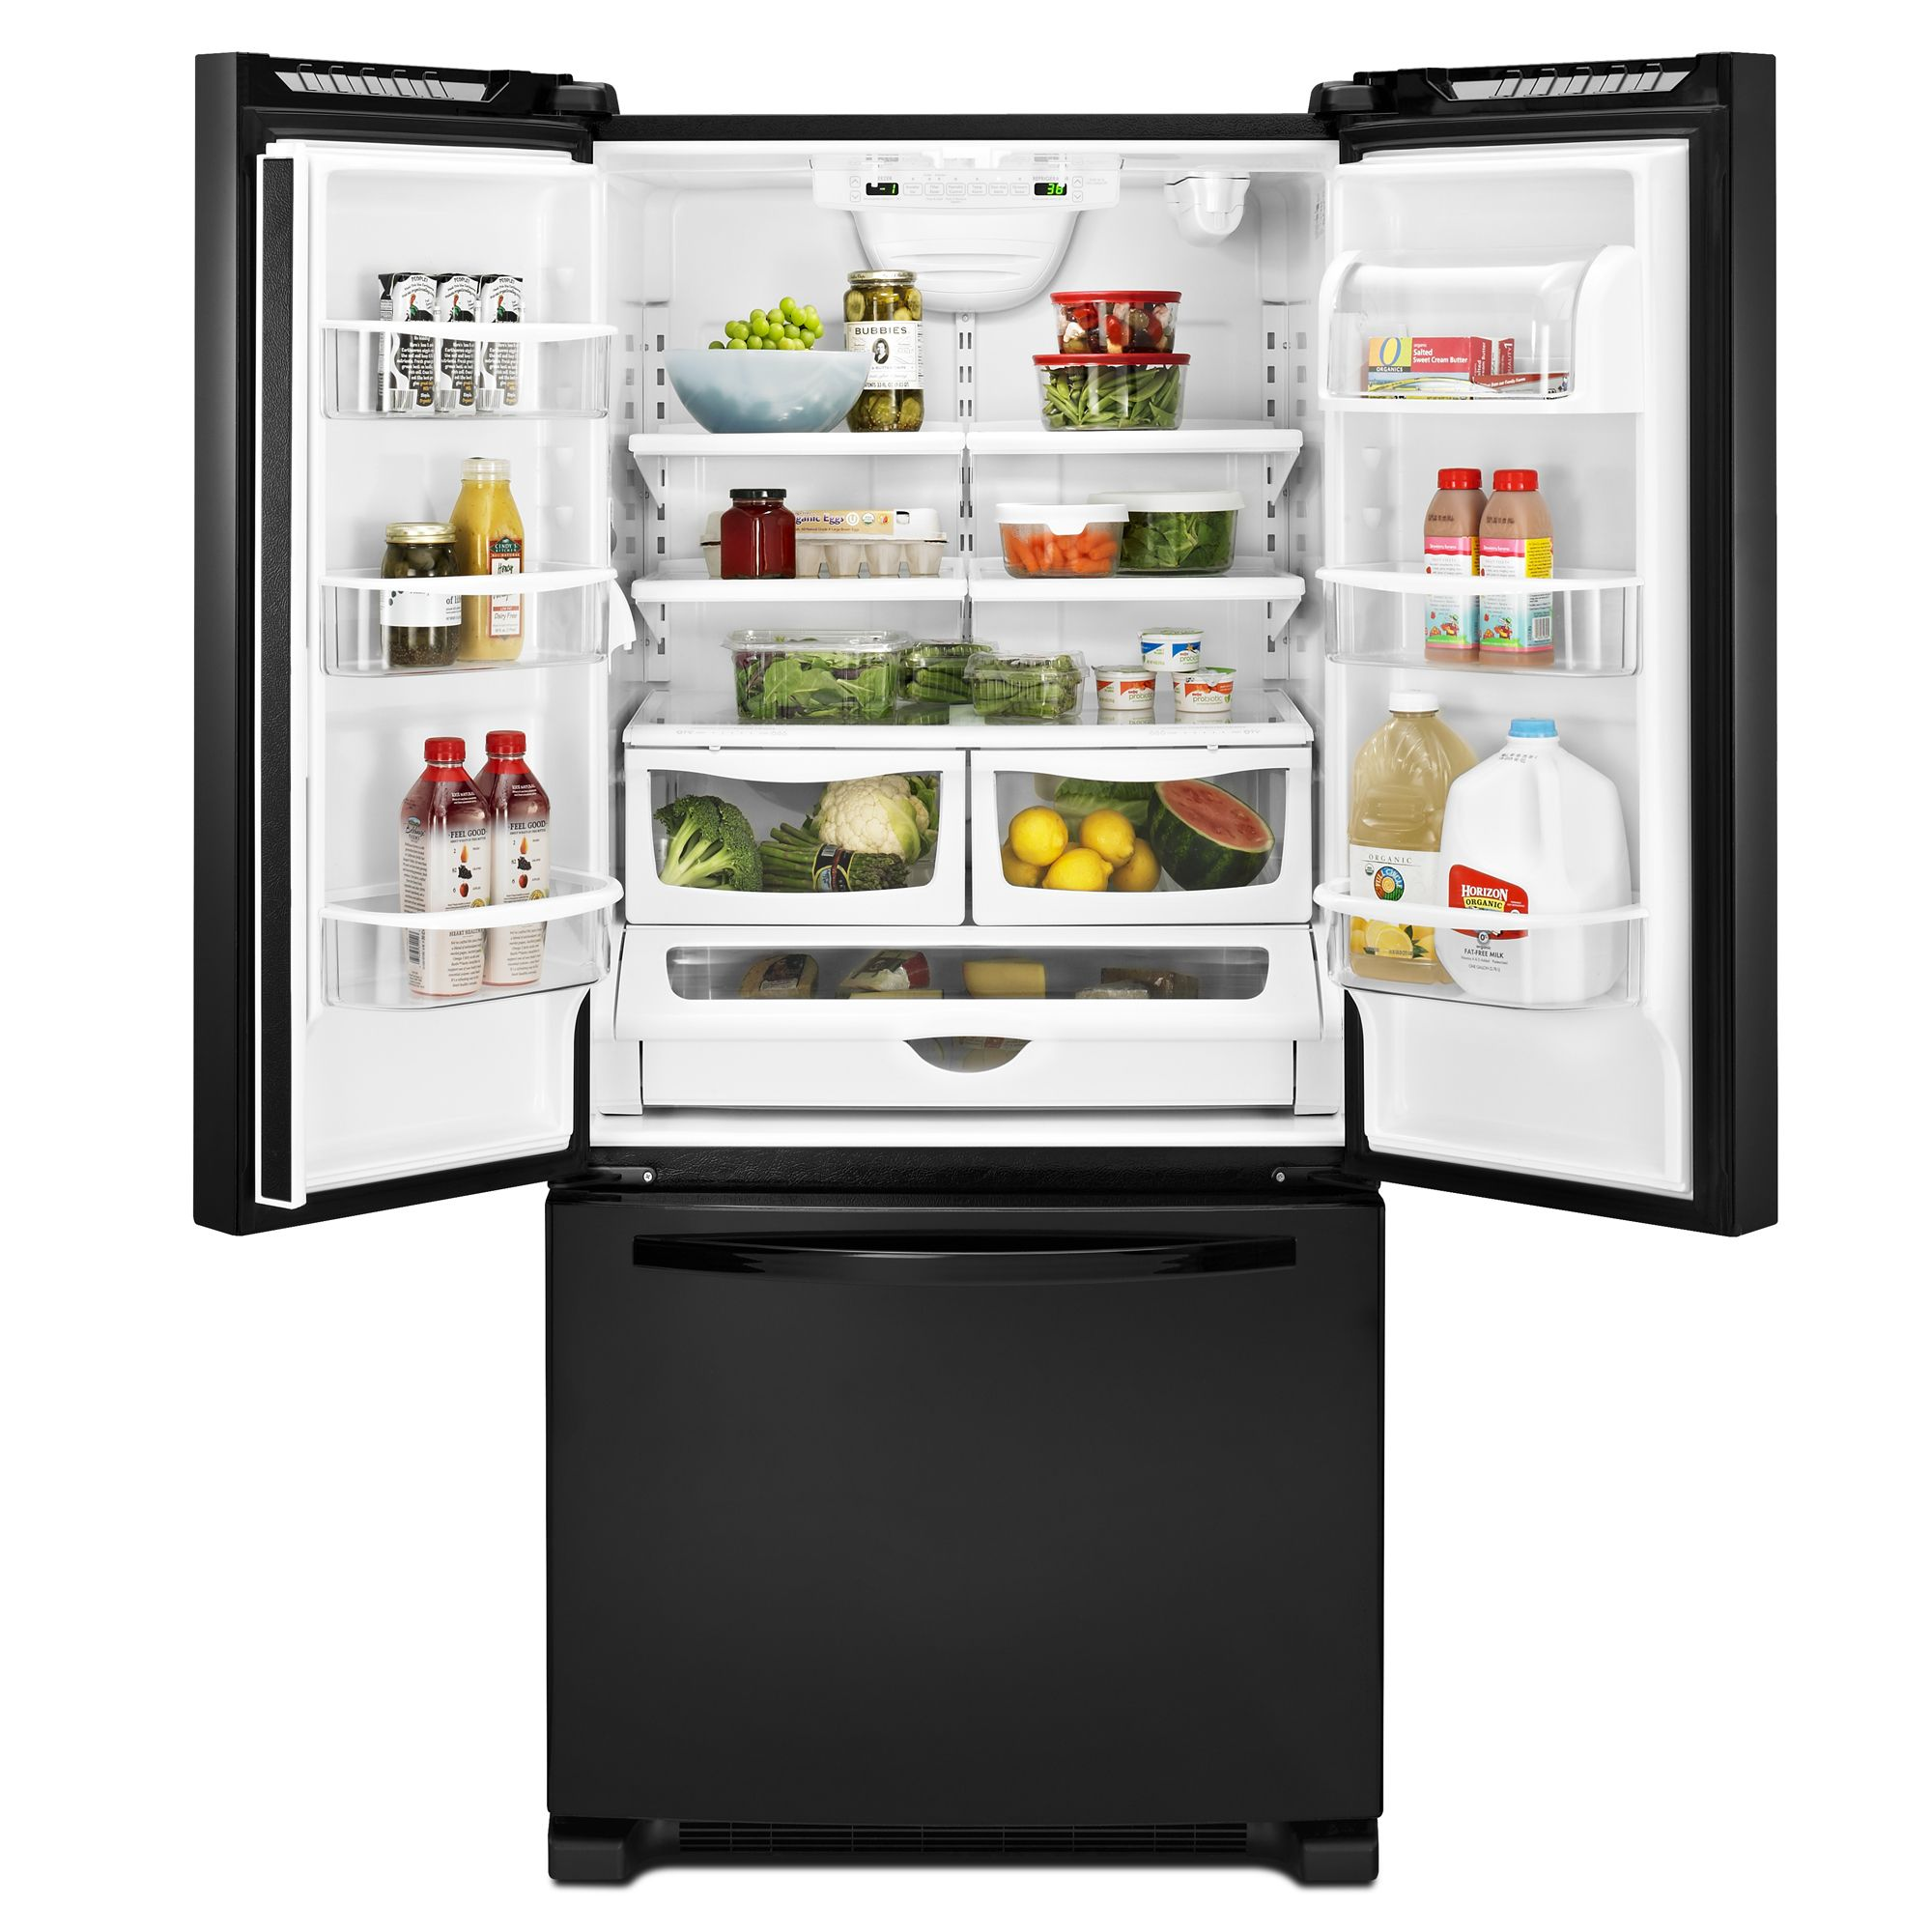 Kenmore 21.9 cu. ft. French-Door Bottom-Freezer Refrigerator w/Internal Dispenser - Black